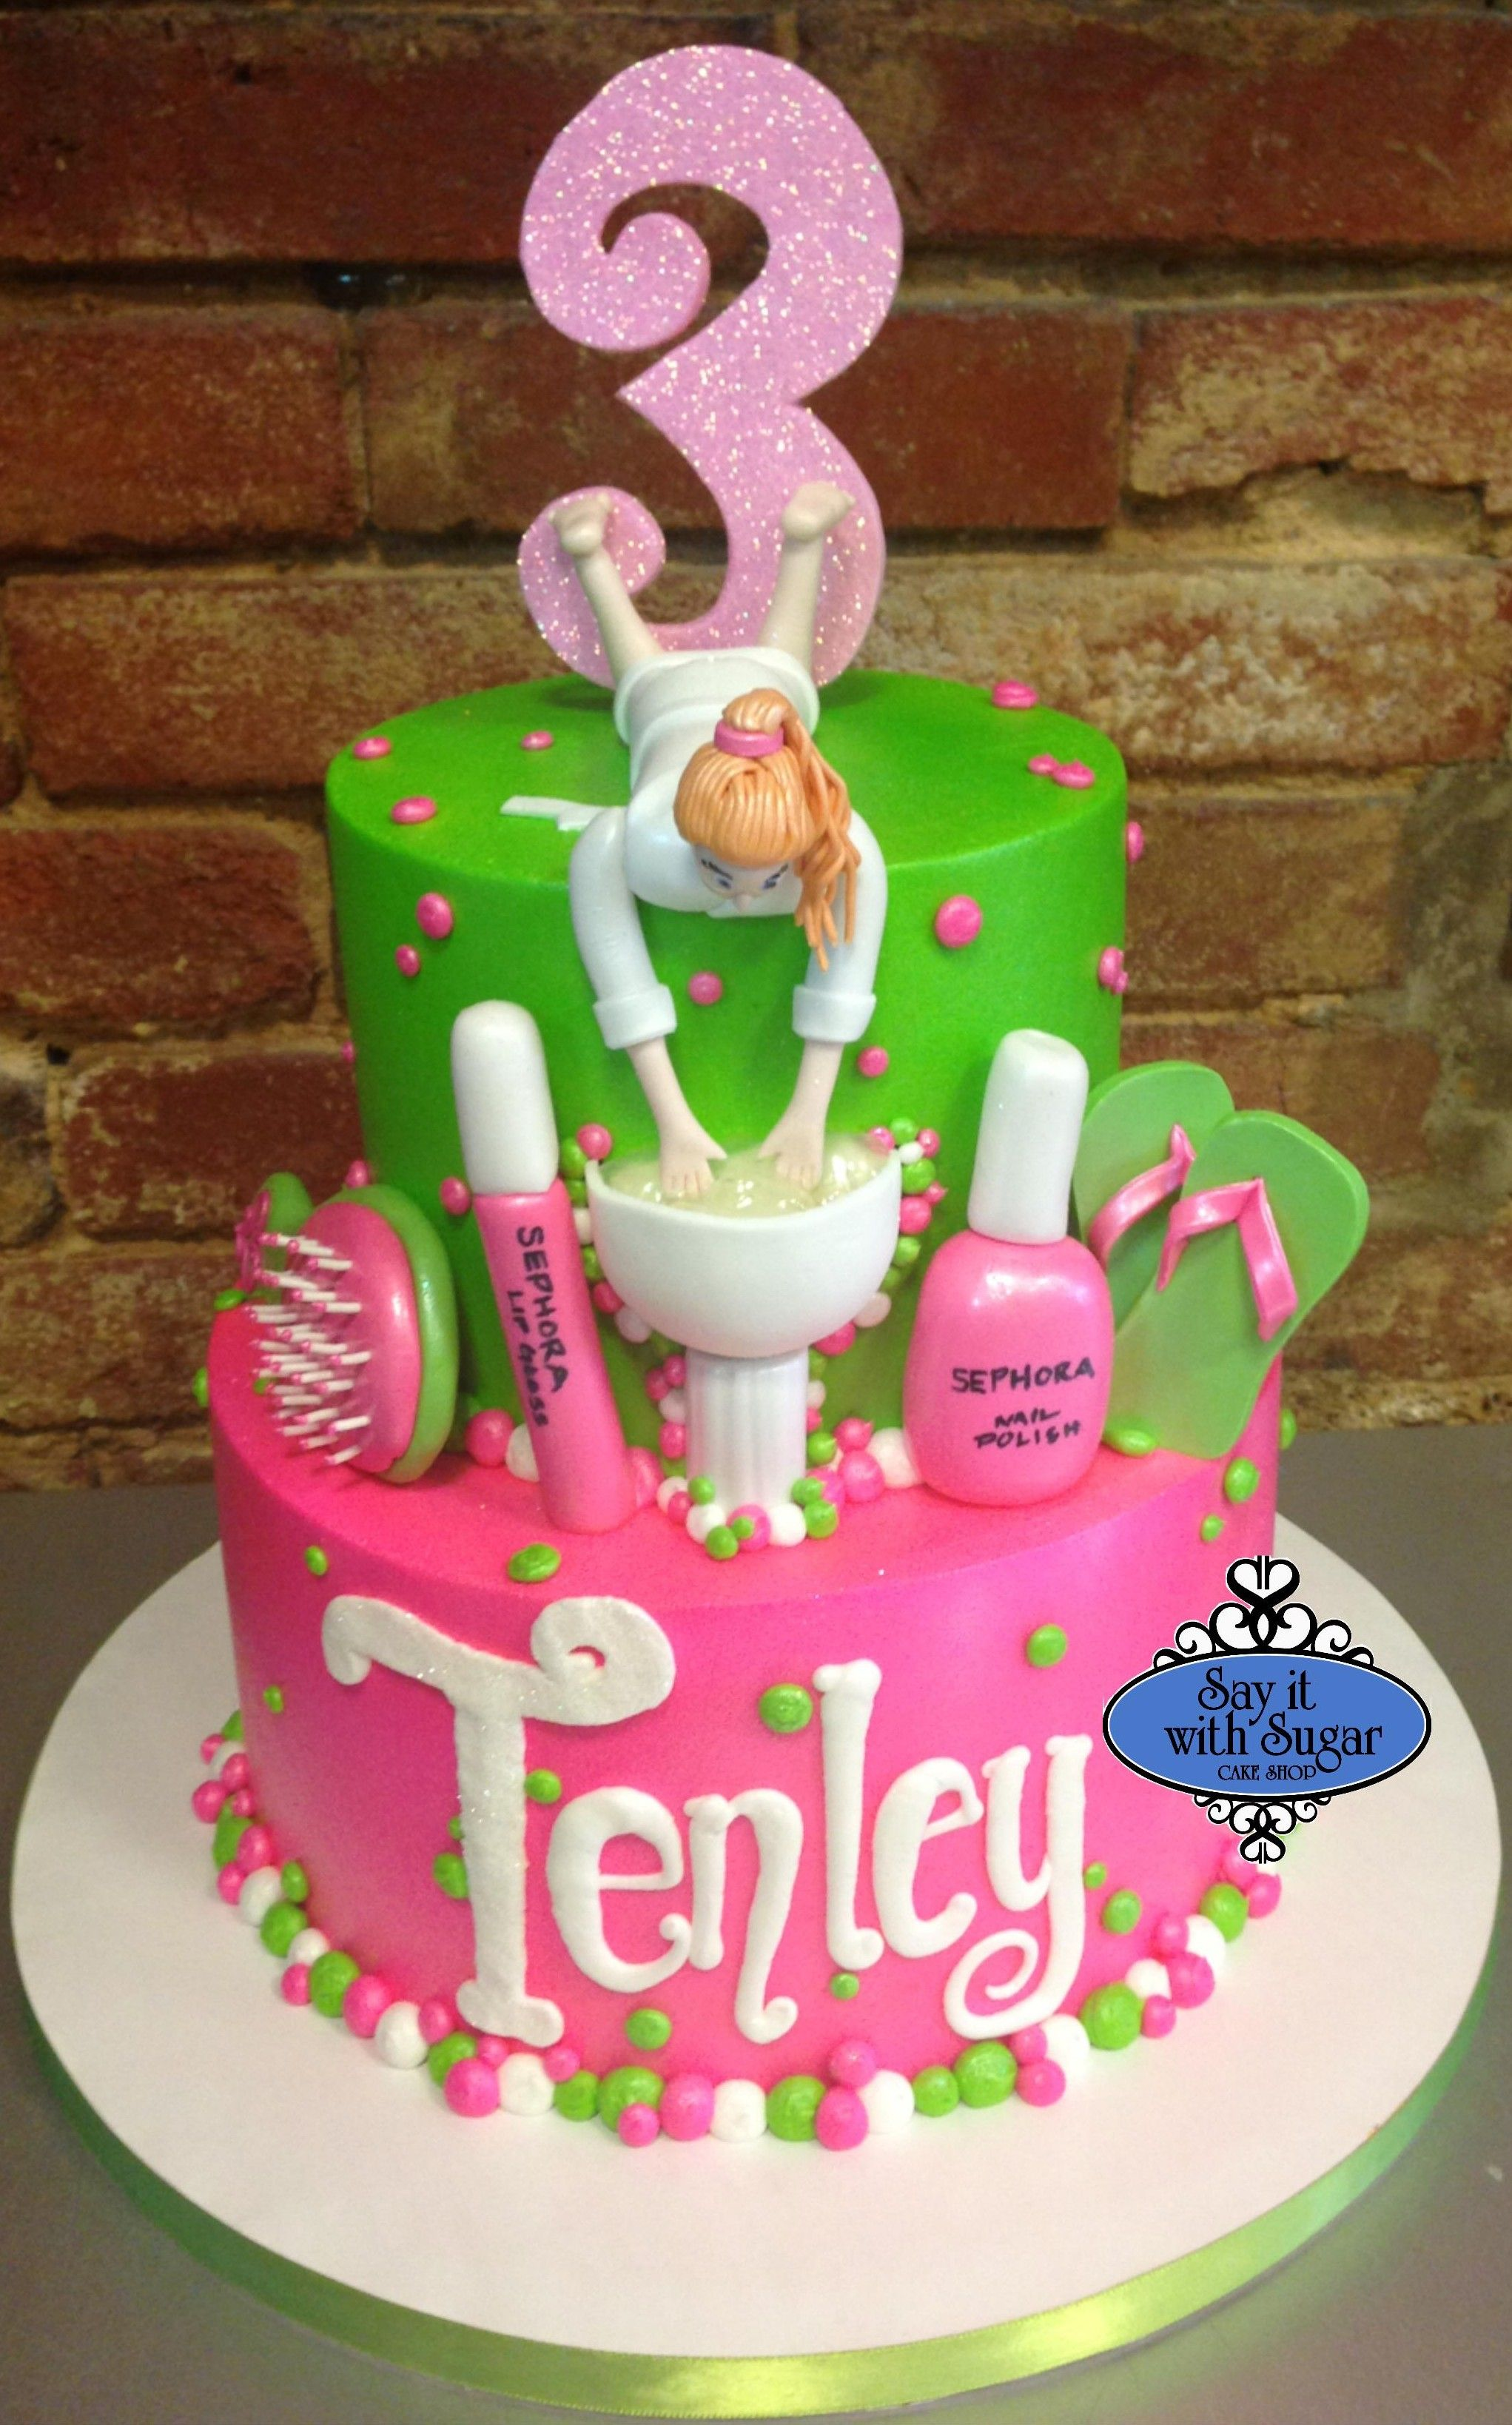 Spa Birthday Cake Cakes By Say It With Sugar Cake Shop - Spa birthday party cake